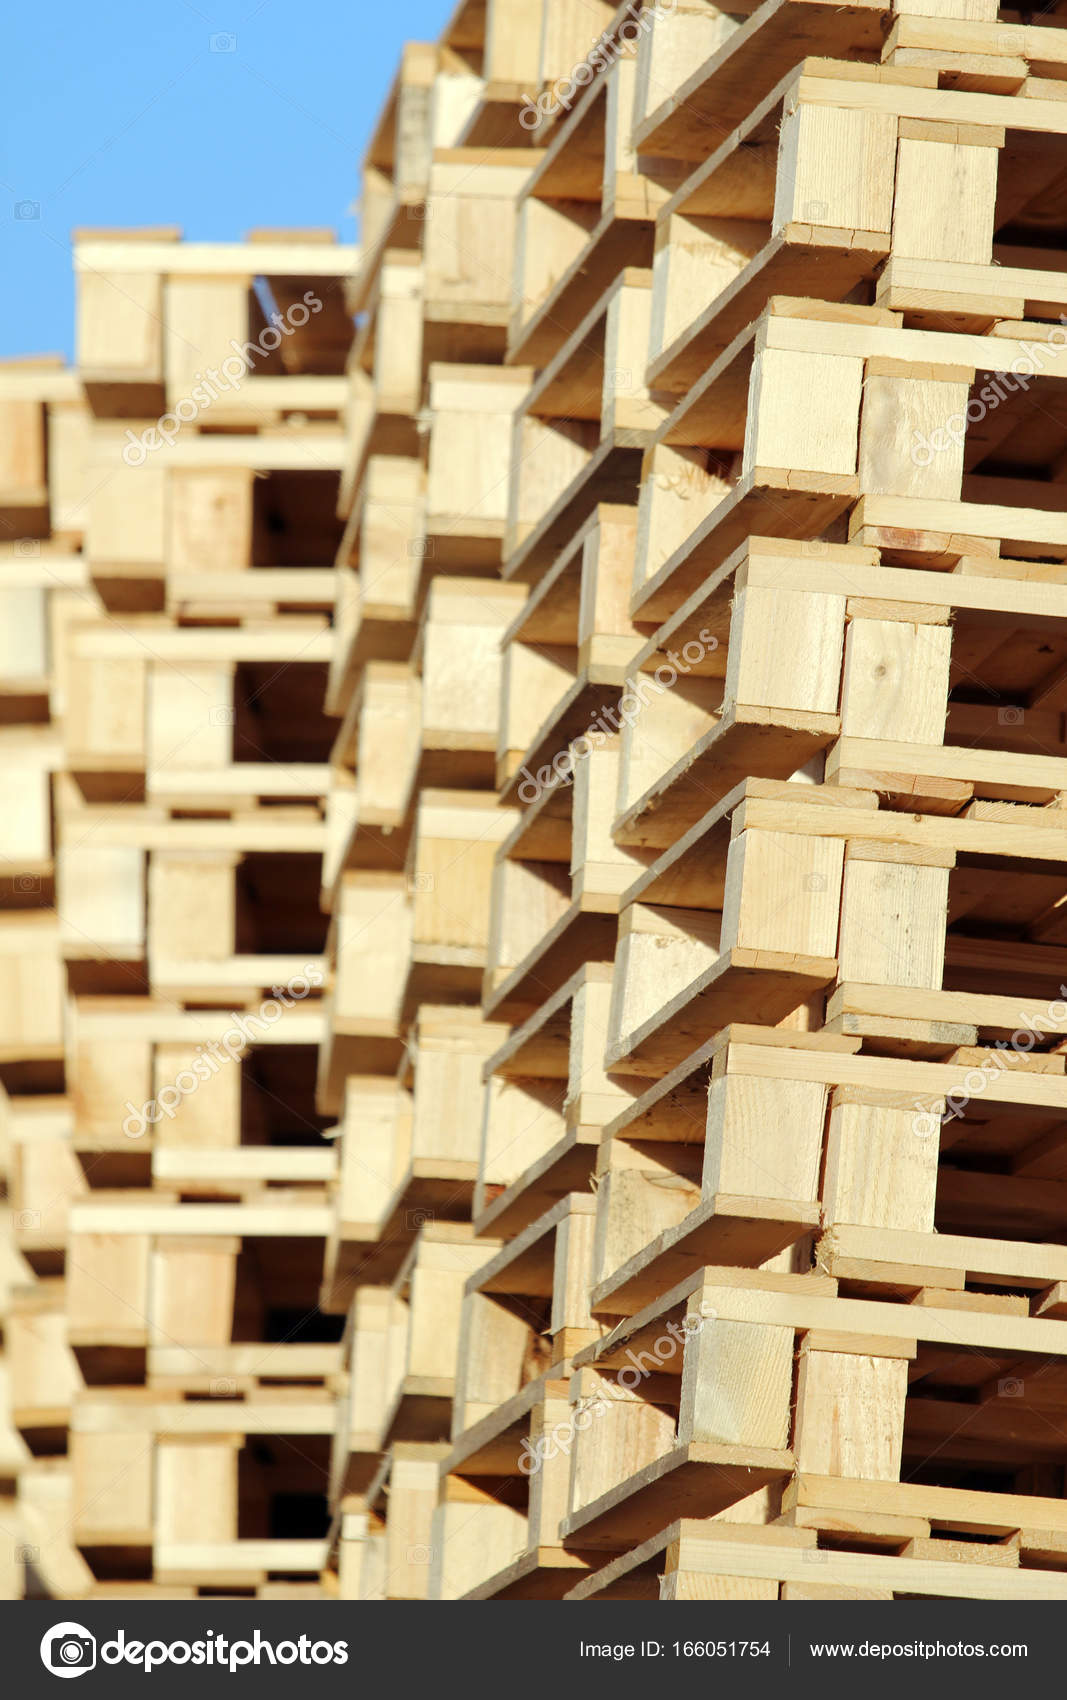 Stacked wooden pallet under blue sky — Stock Photo © kodda #166051754